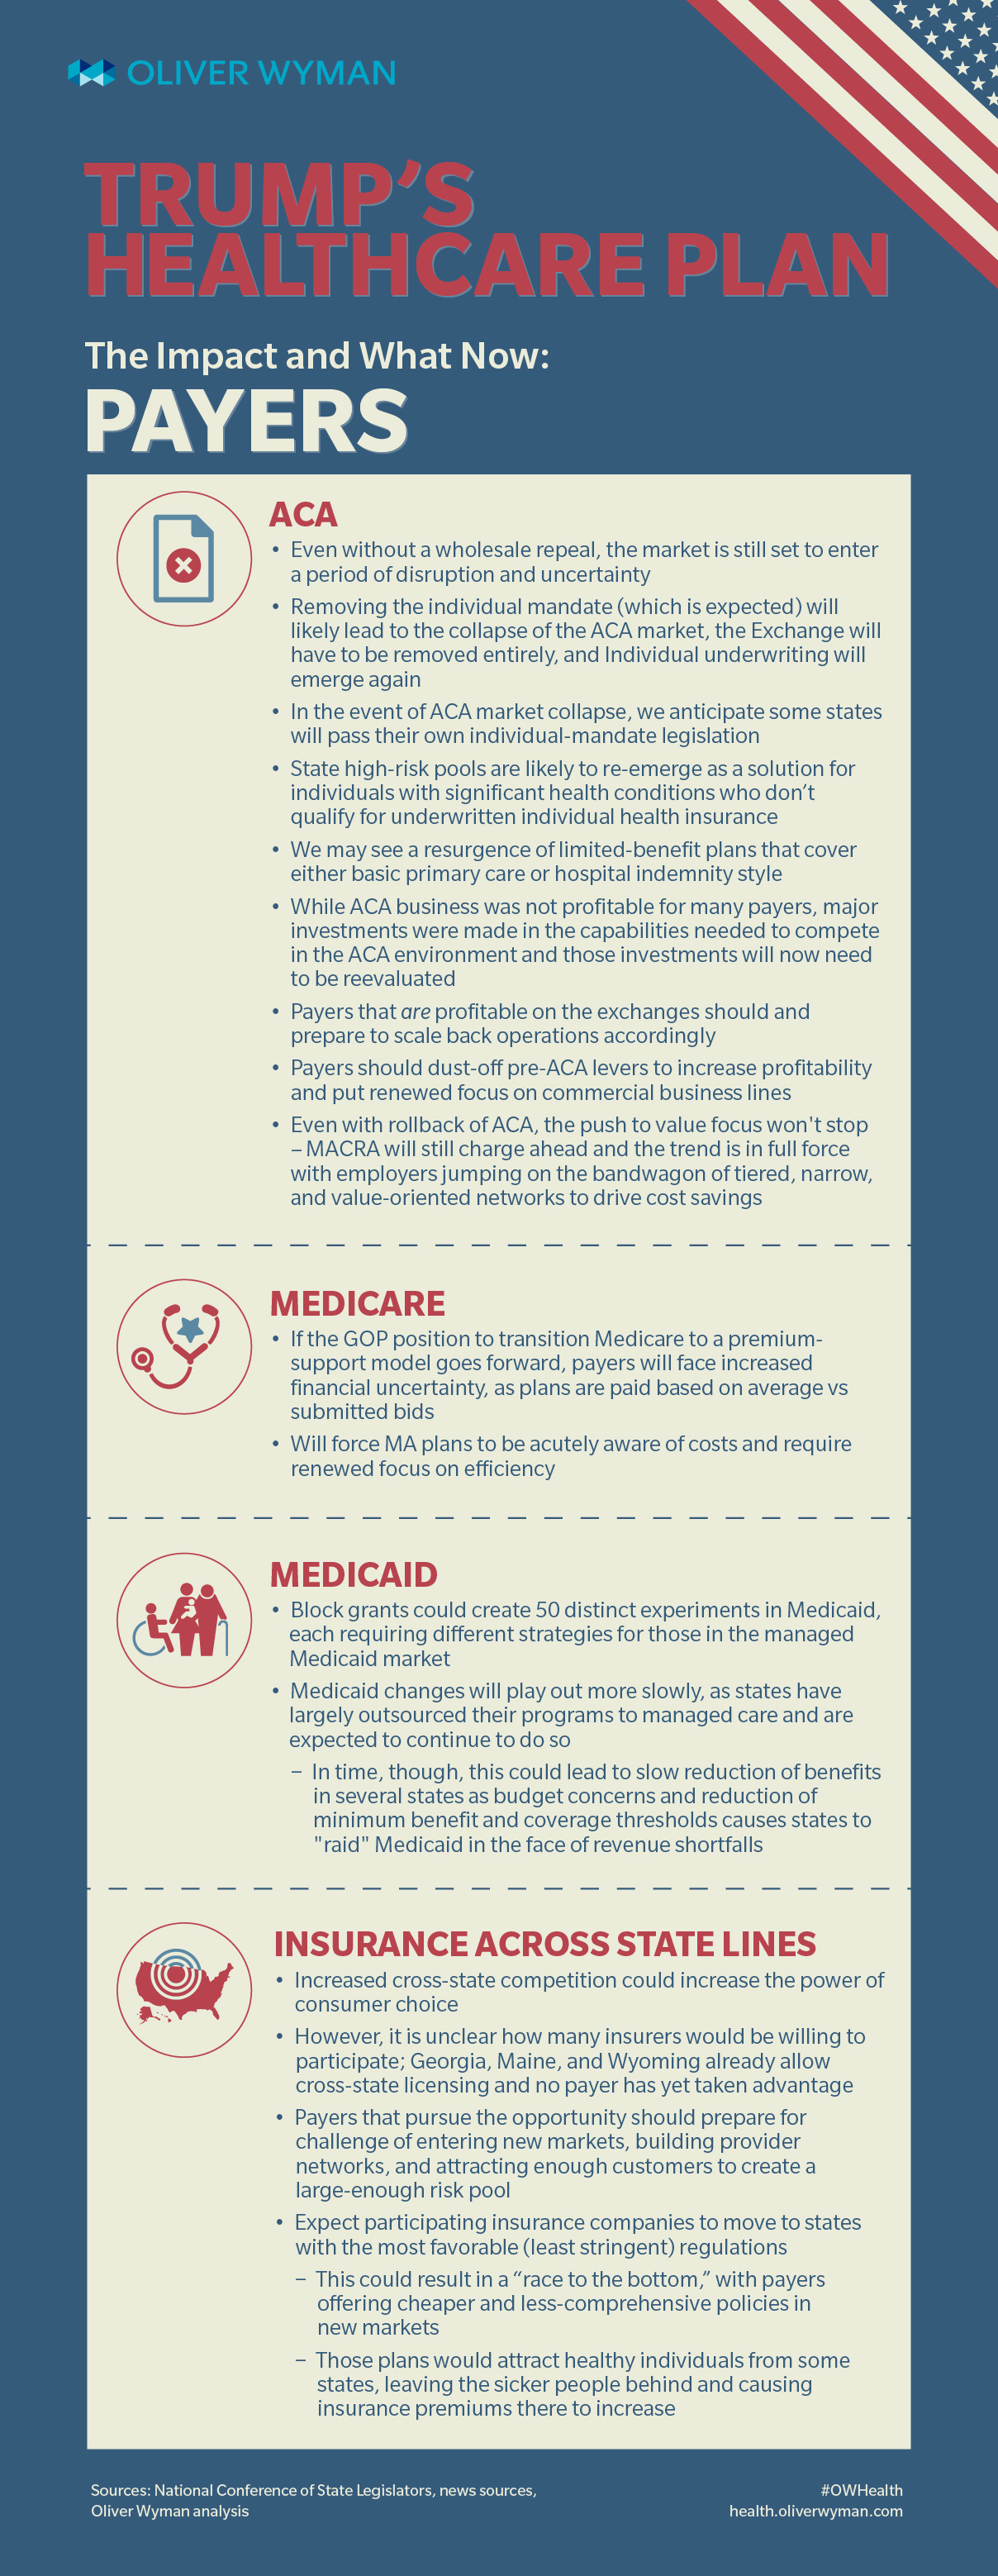 describe the impact of managed care on both the medicare and medicaid programs